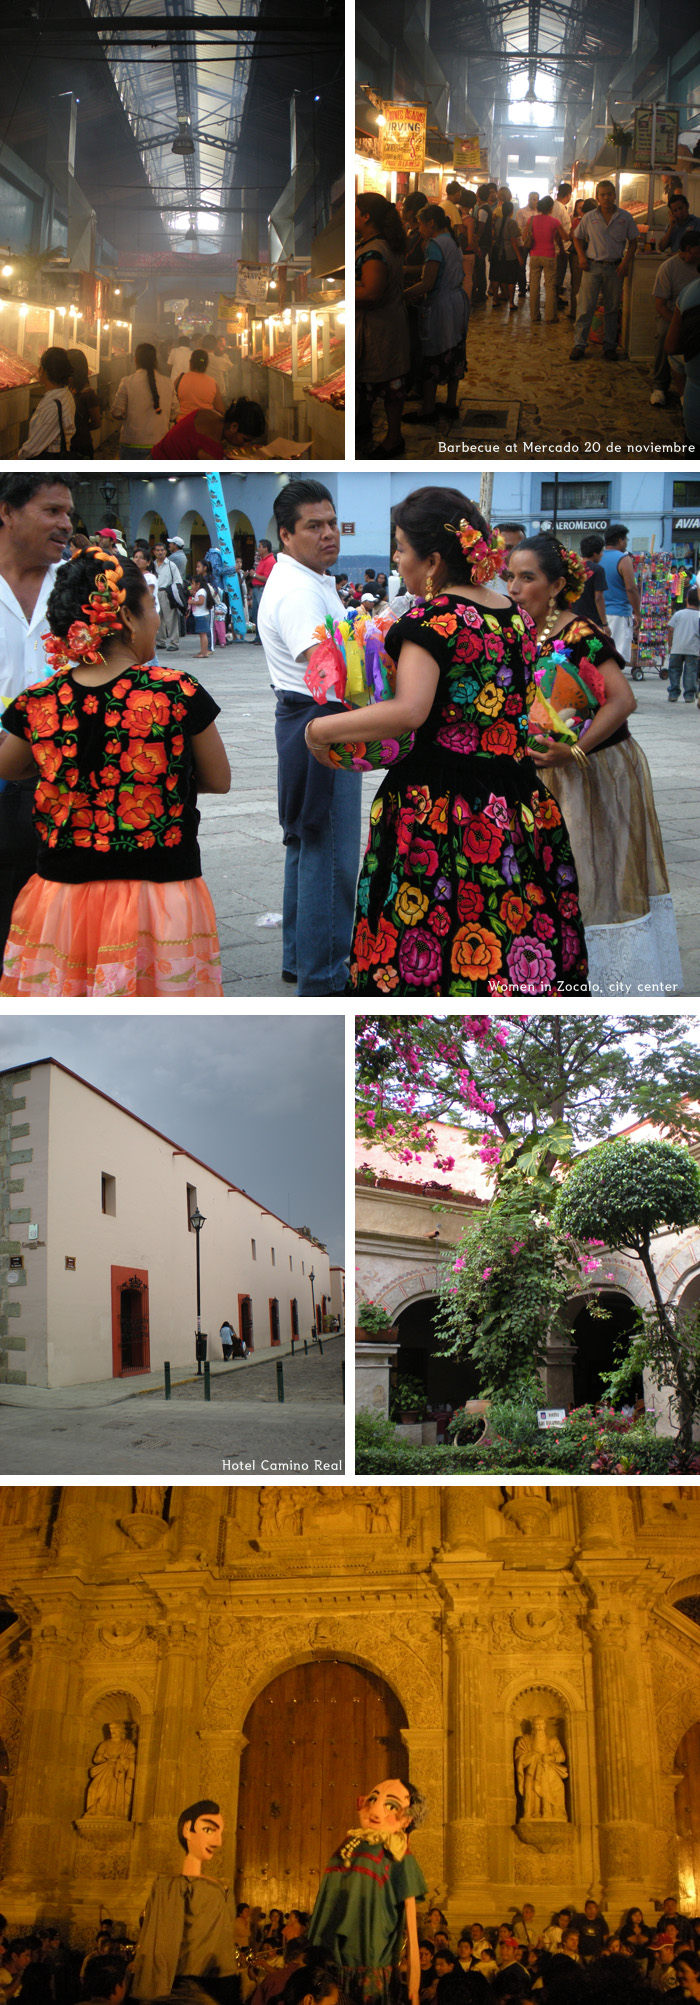 Very Mexican and pleasant city, Oaxaca